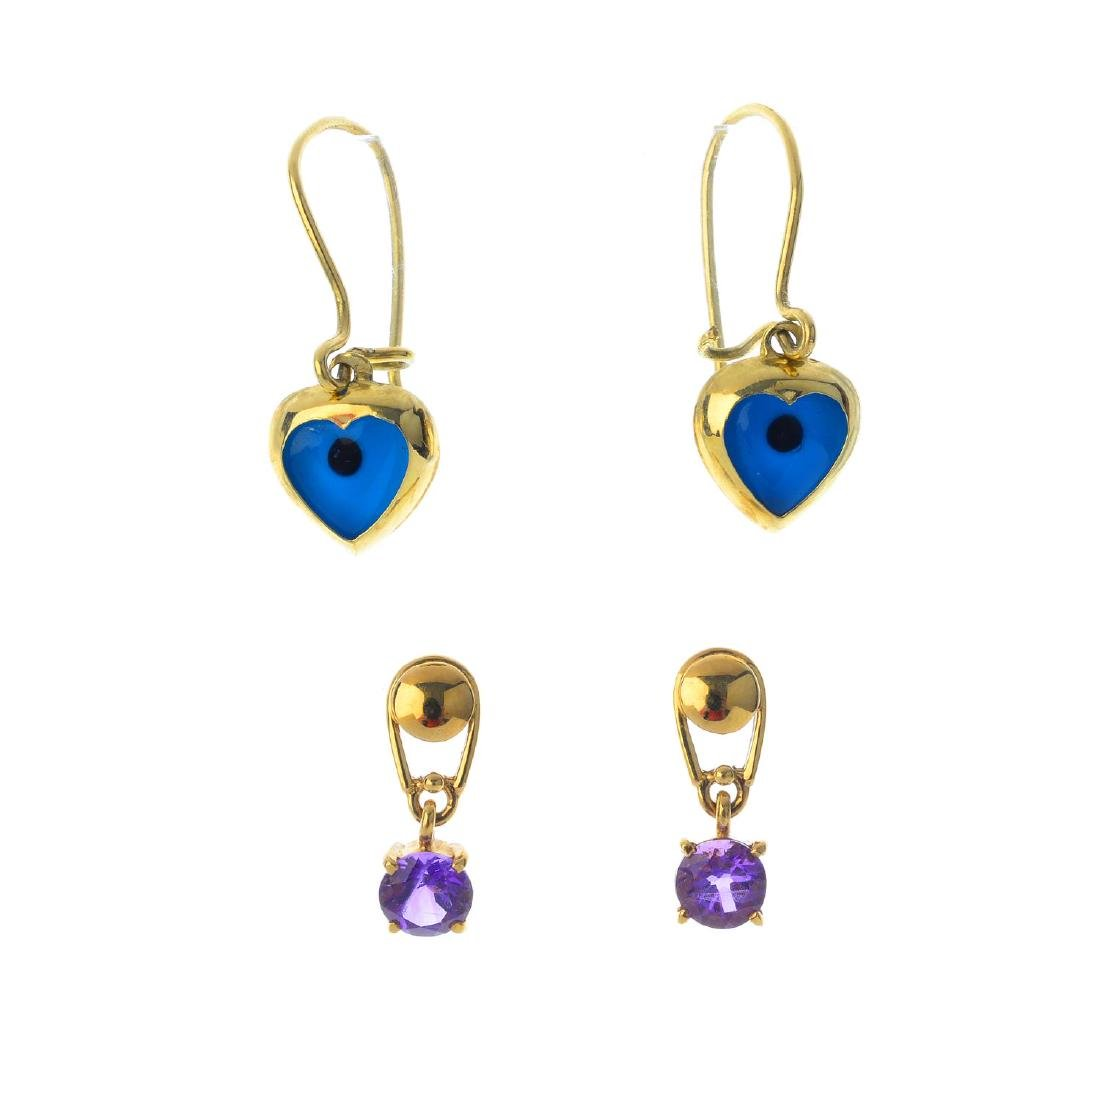 Two pairs of gem-set earrings. The first pair each